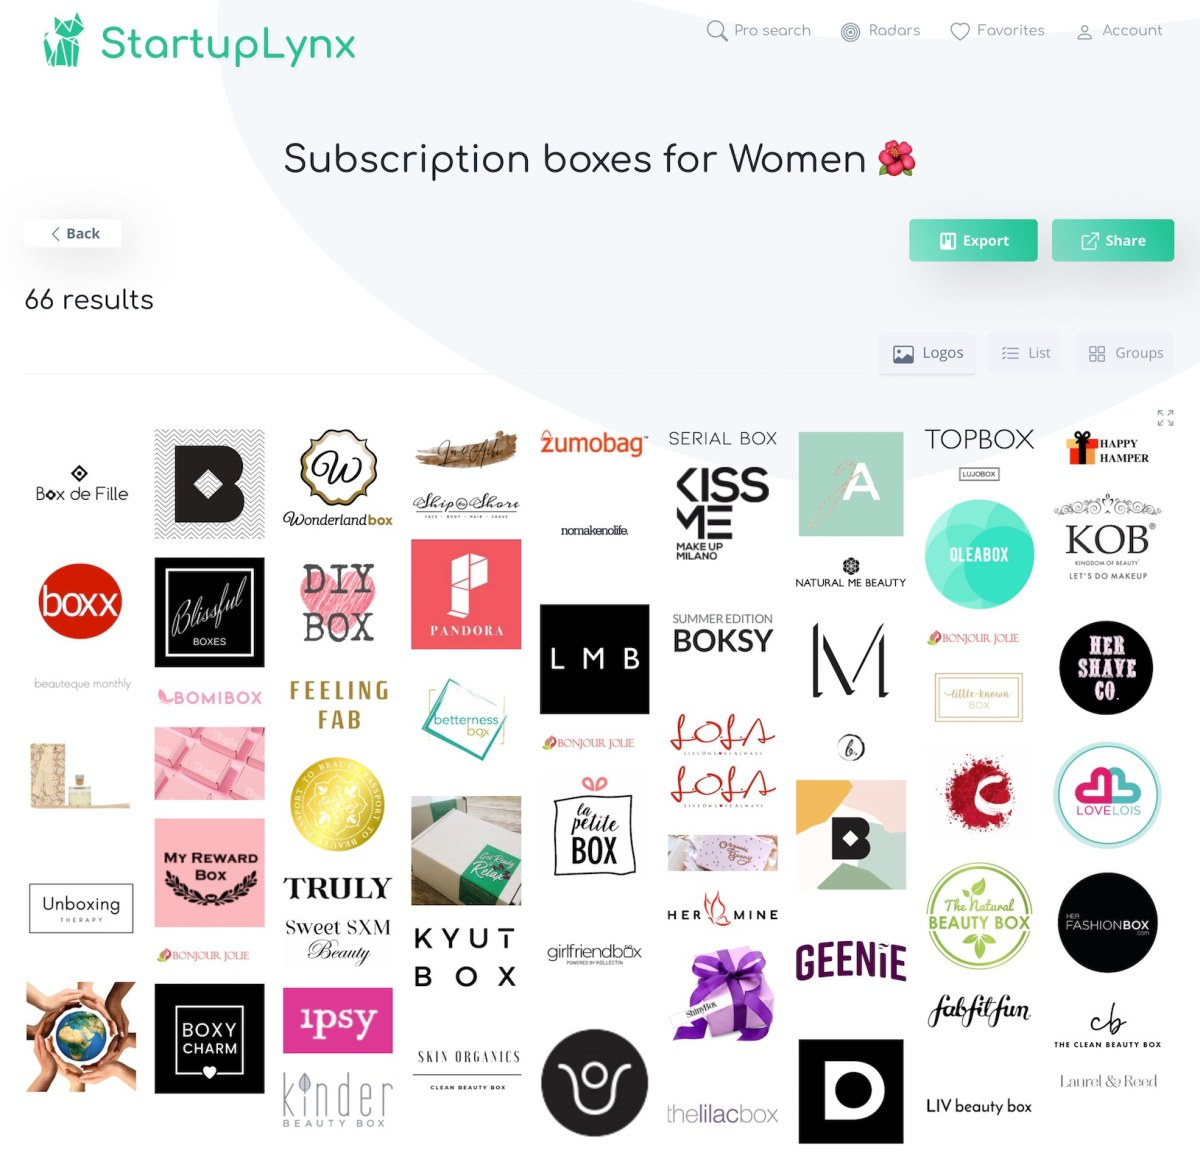 Beauty and health essential subscription boxes for women in a StartupLynx radar